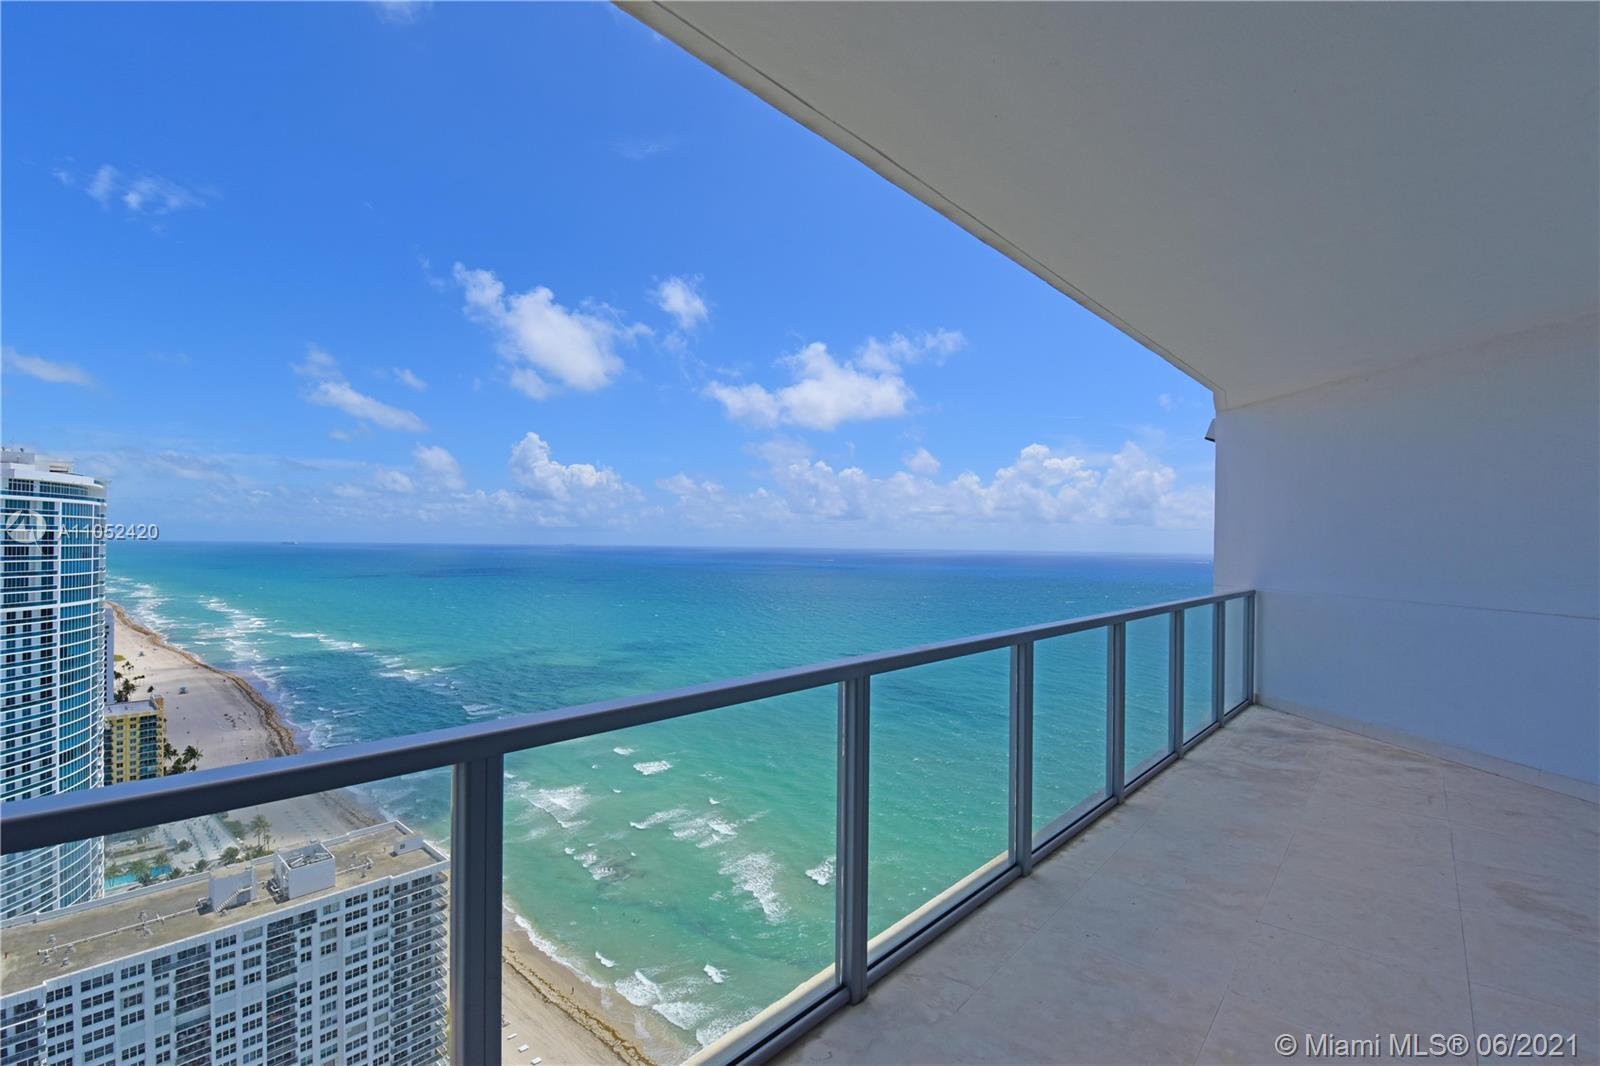 Stunning OCEANFRONT PENTHOUSE! Only $730 X SF. Private elevator and foyer entry. Marble floors, Euro